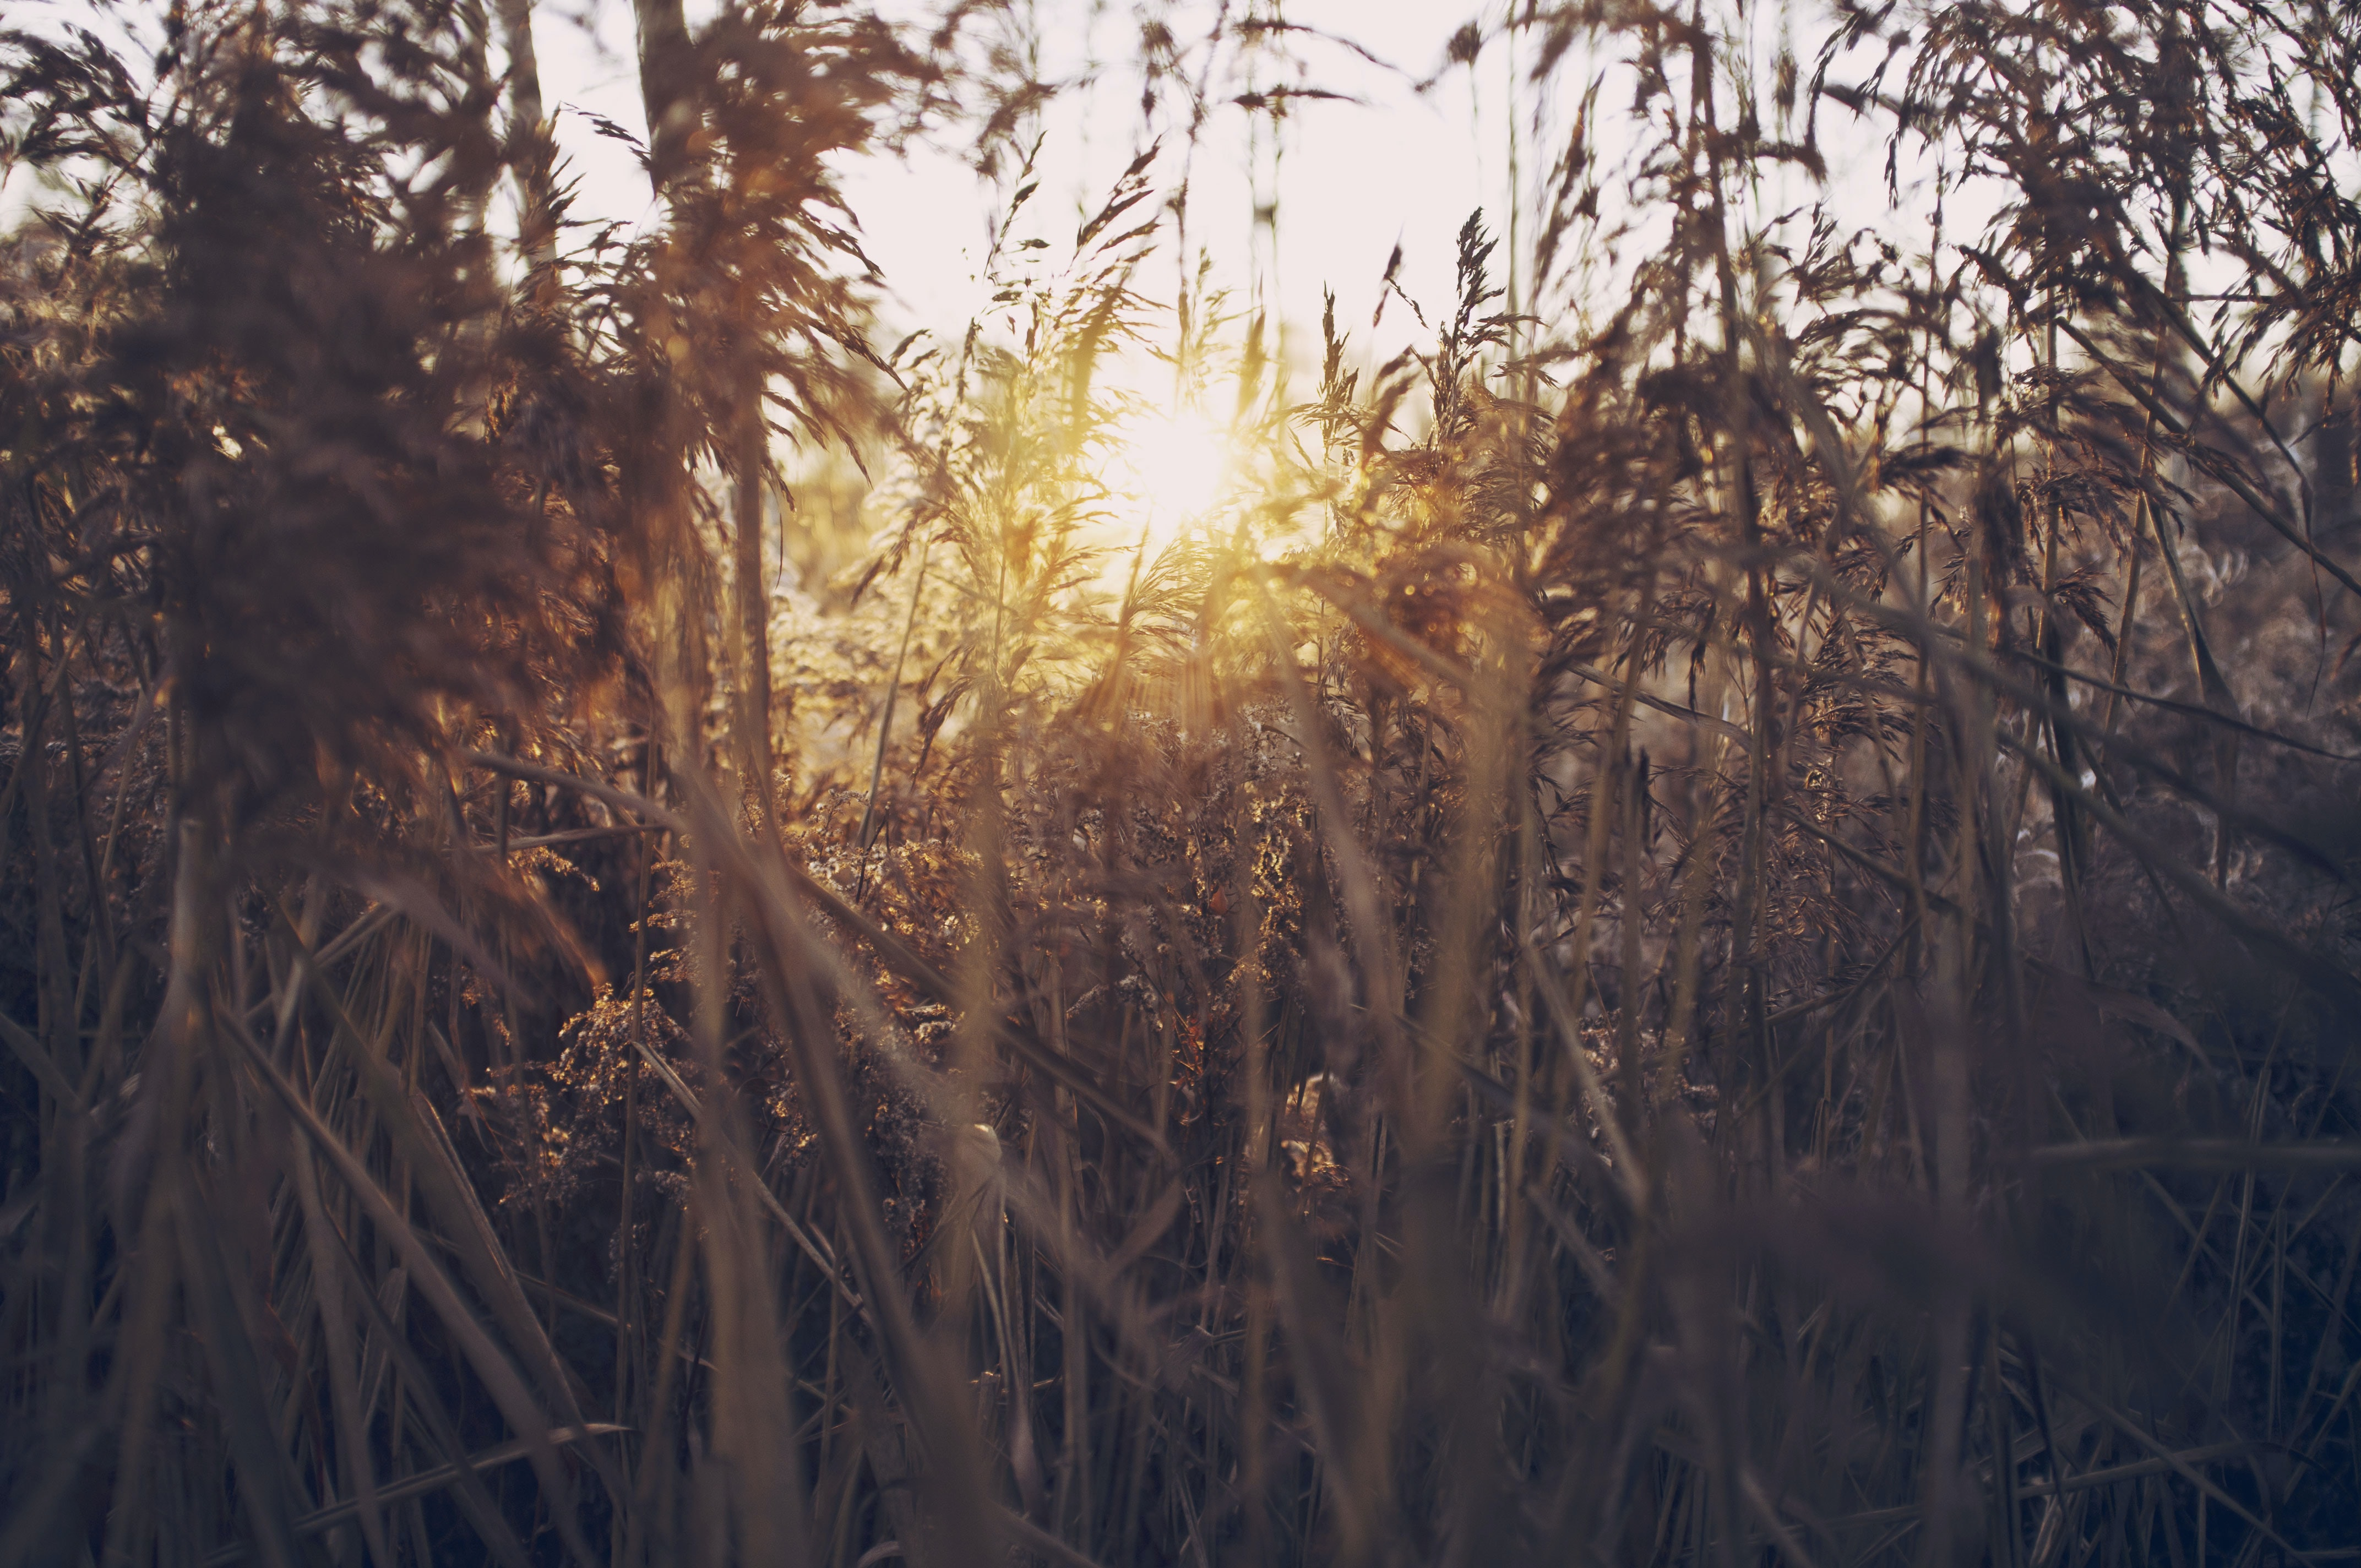 Sun shining through a thick patch of golden reeds